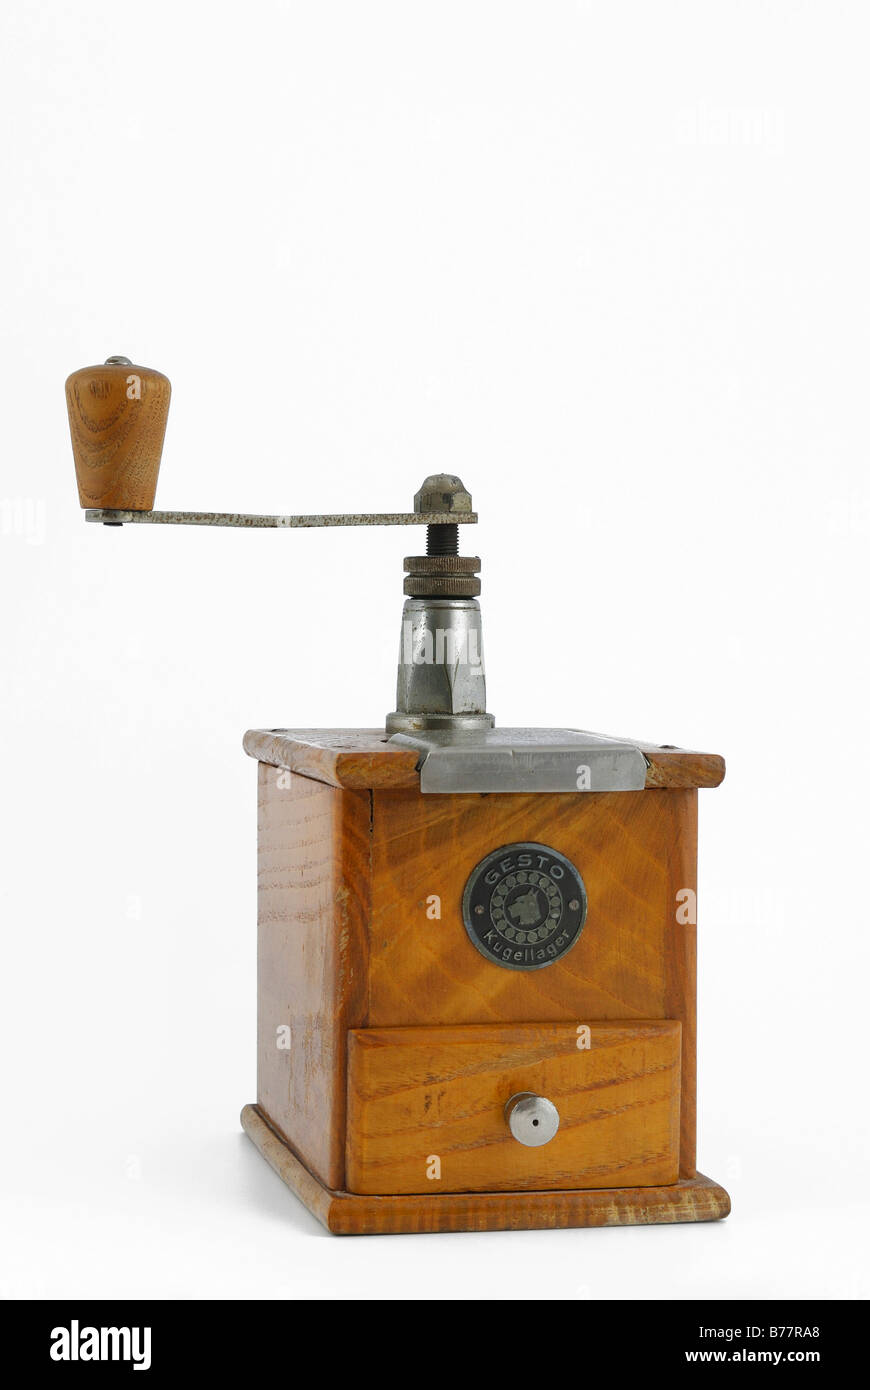 Antique Manual Coffee Mill Stock Photo 21684944 Alamy